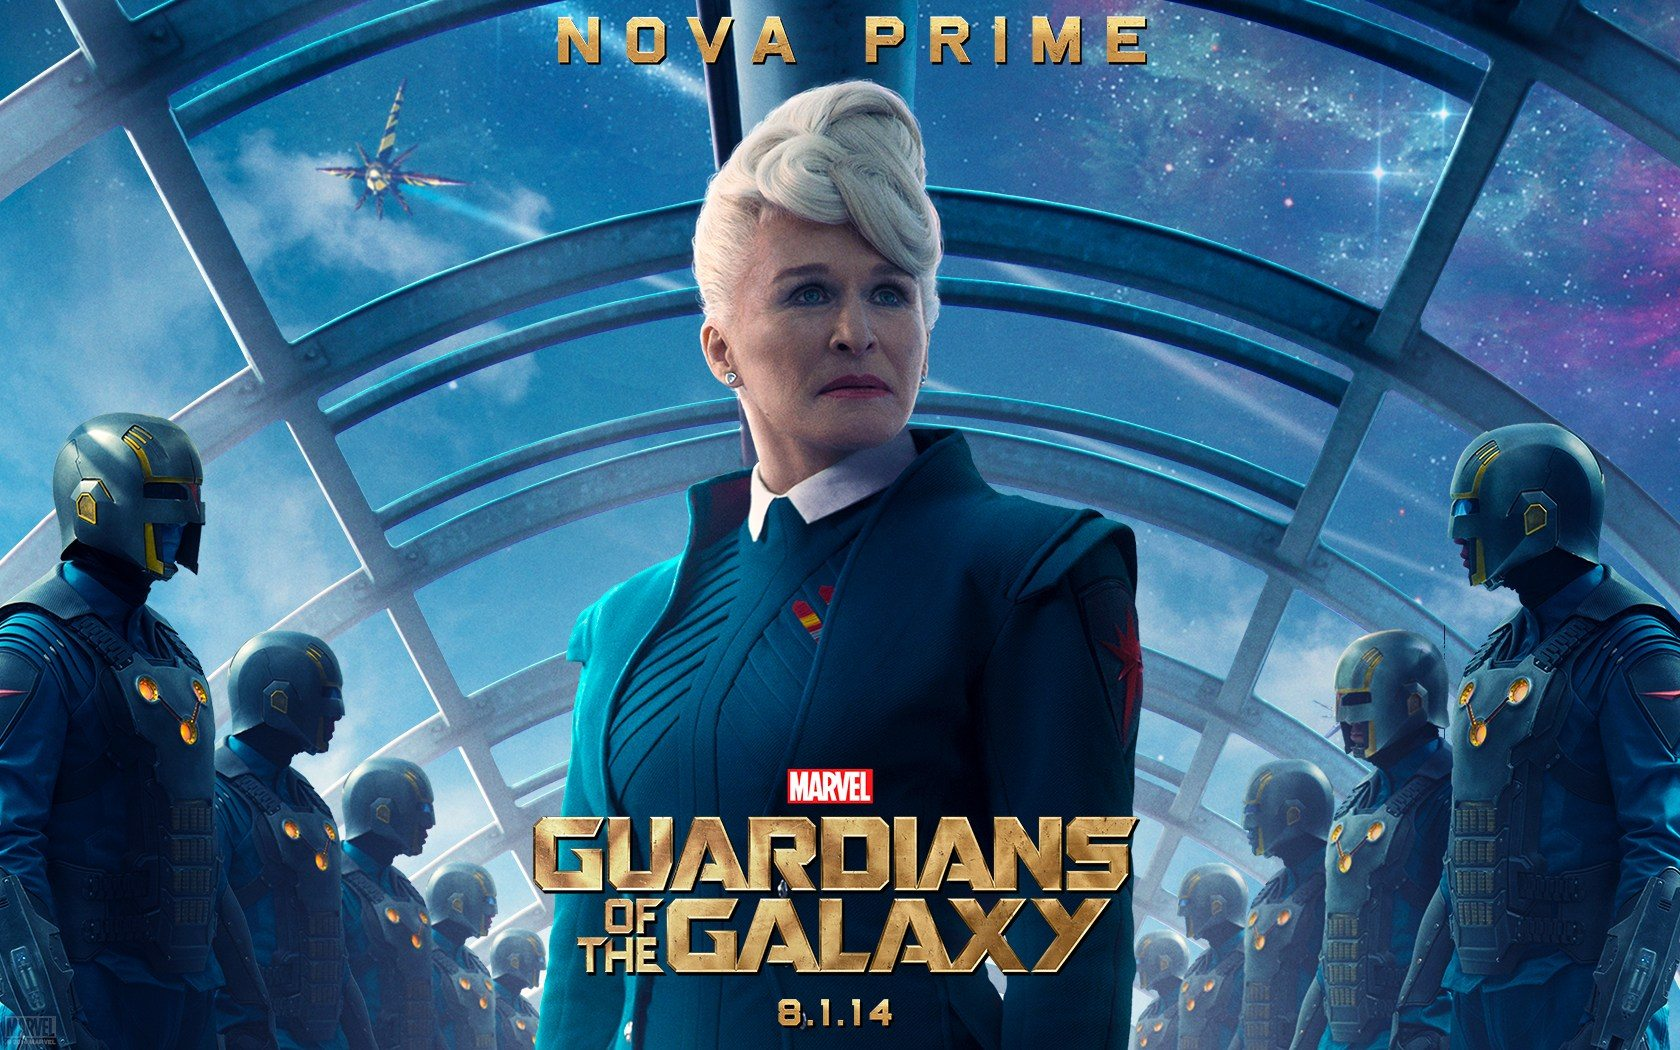 New York Prime >> James Gunn confirms that Glenn Close was cut from Guardians of the Galaxy Vol. 2